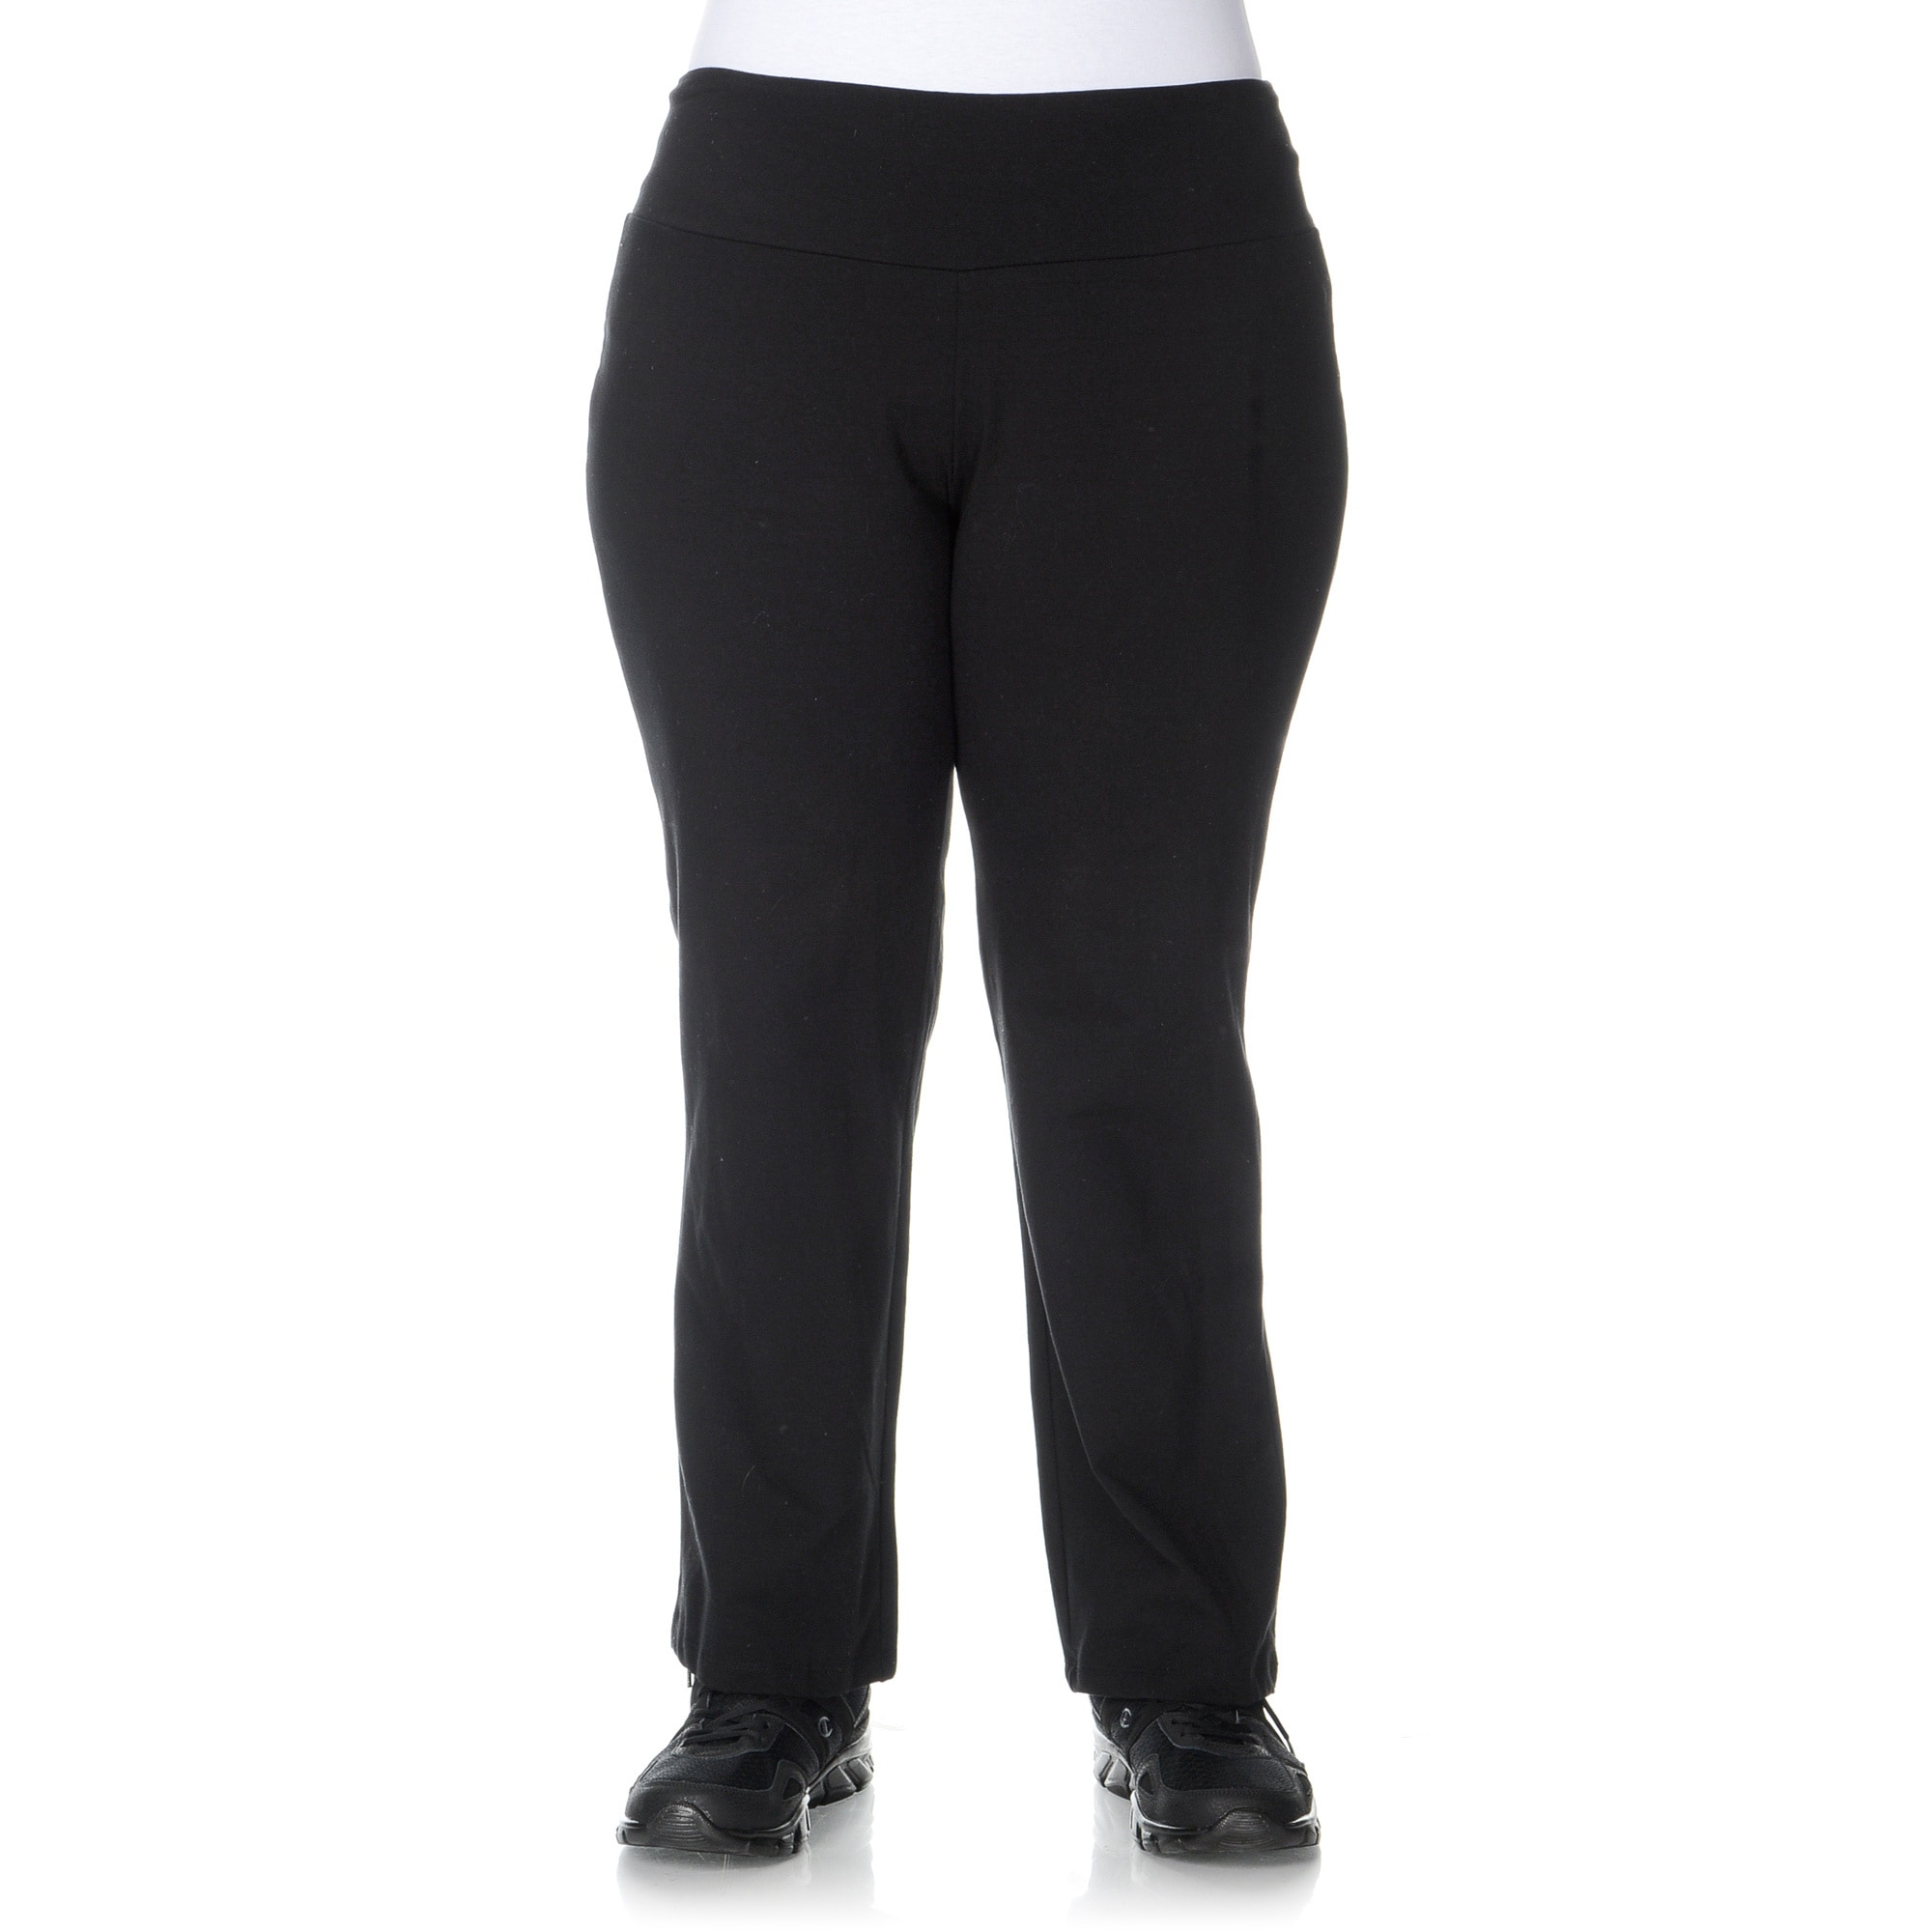 a19fcd428e829 Shop Teez-Her Women's Plus Size 'The Skinny' Tummy Control Pants ...